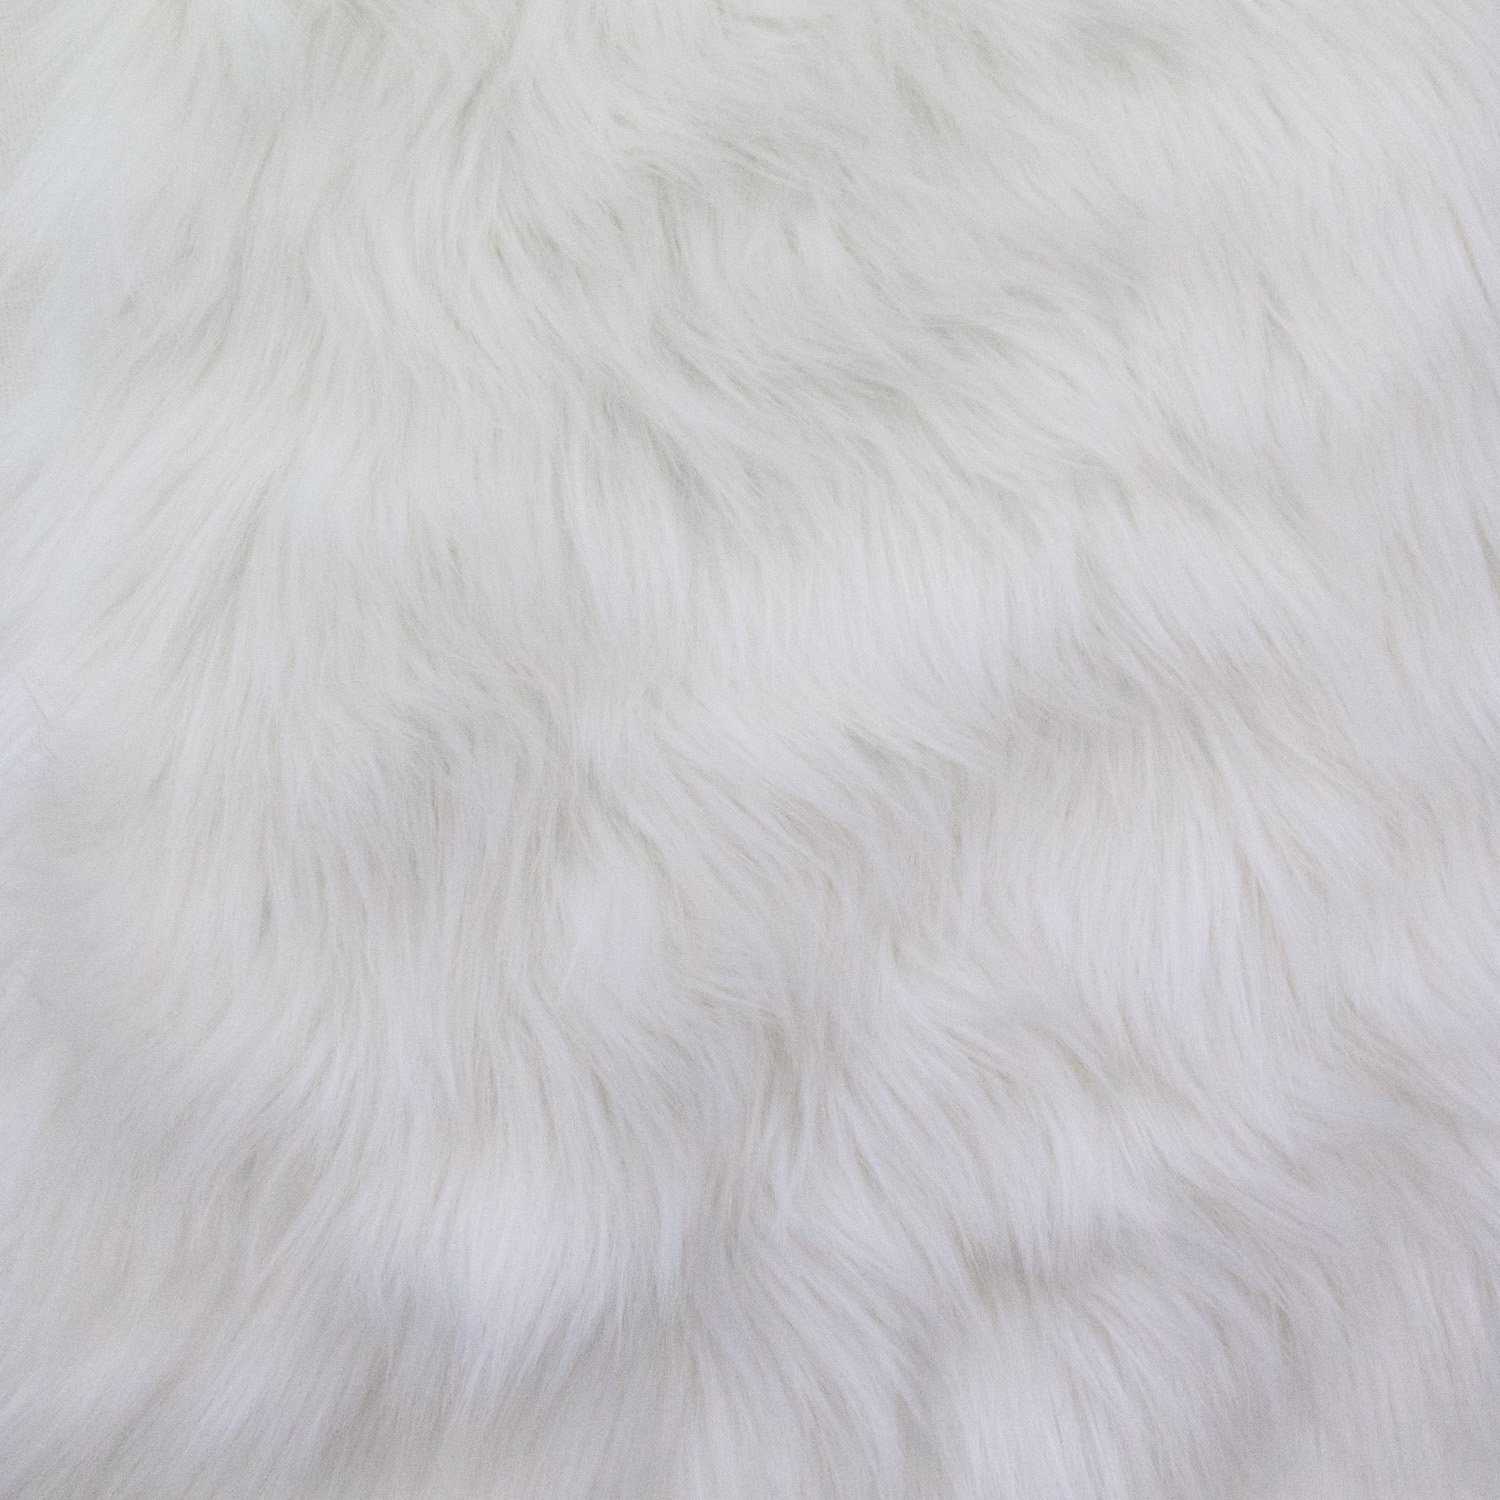 Faux Fake Fur Solid Shaggy Long Pile Fabric - White - 60 Width Sold by The Yard The Fabric Exchange WHTFUR